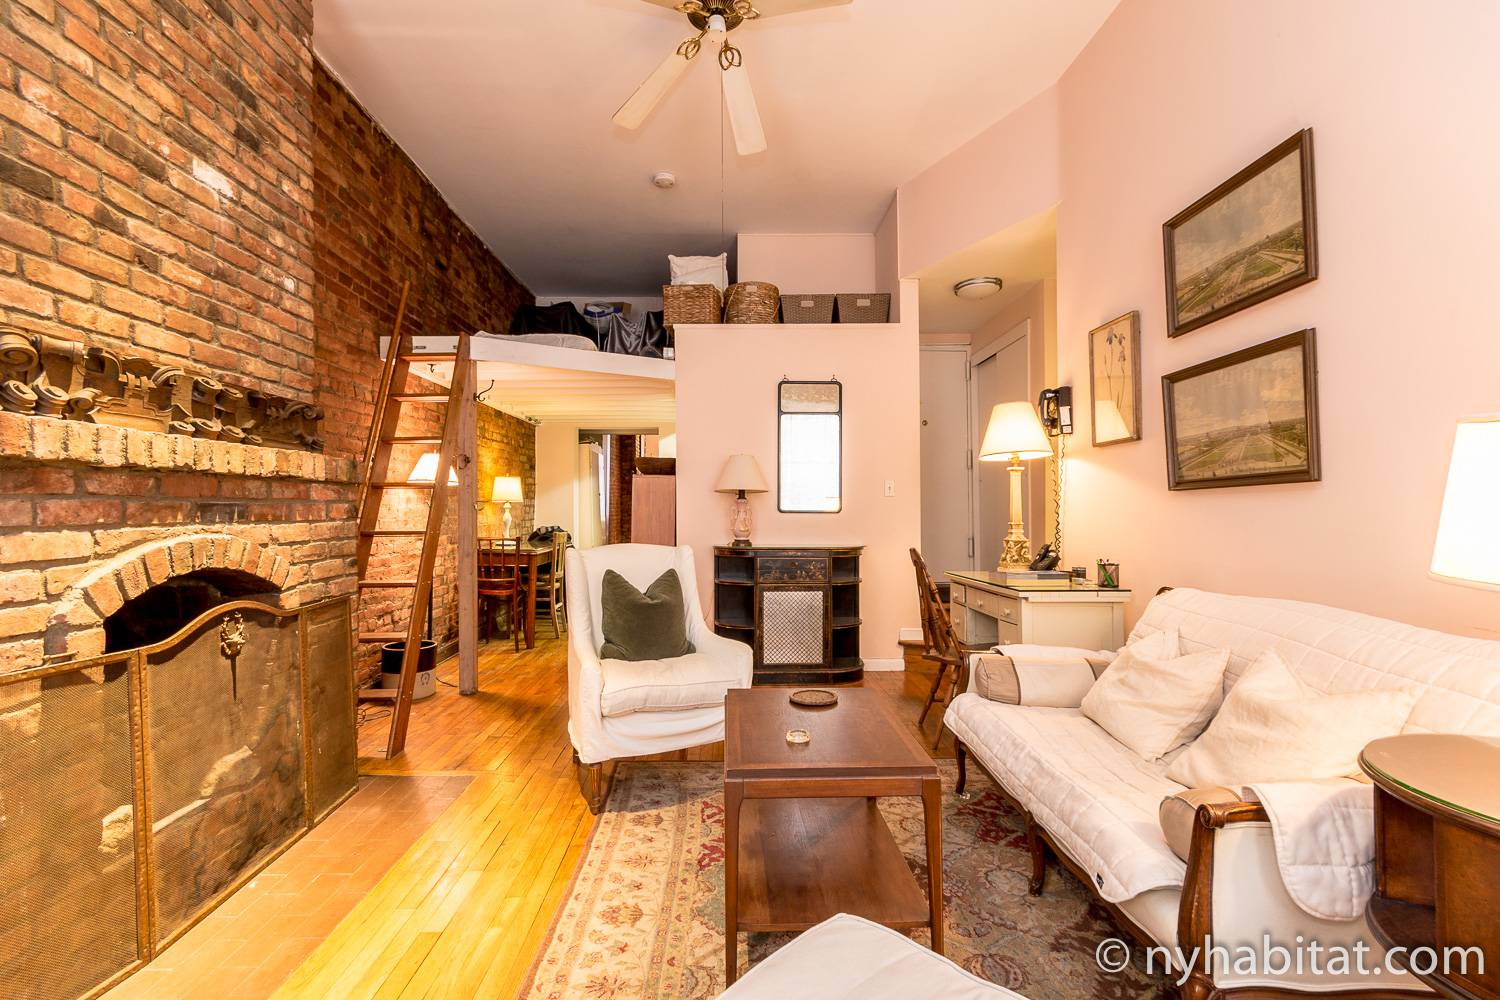 Image of living area of NY-12100 with decorative fireplace, loft storage area and sofa